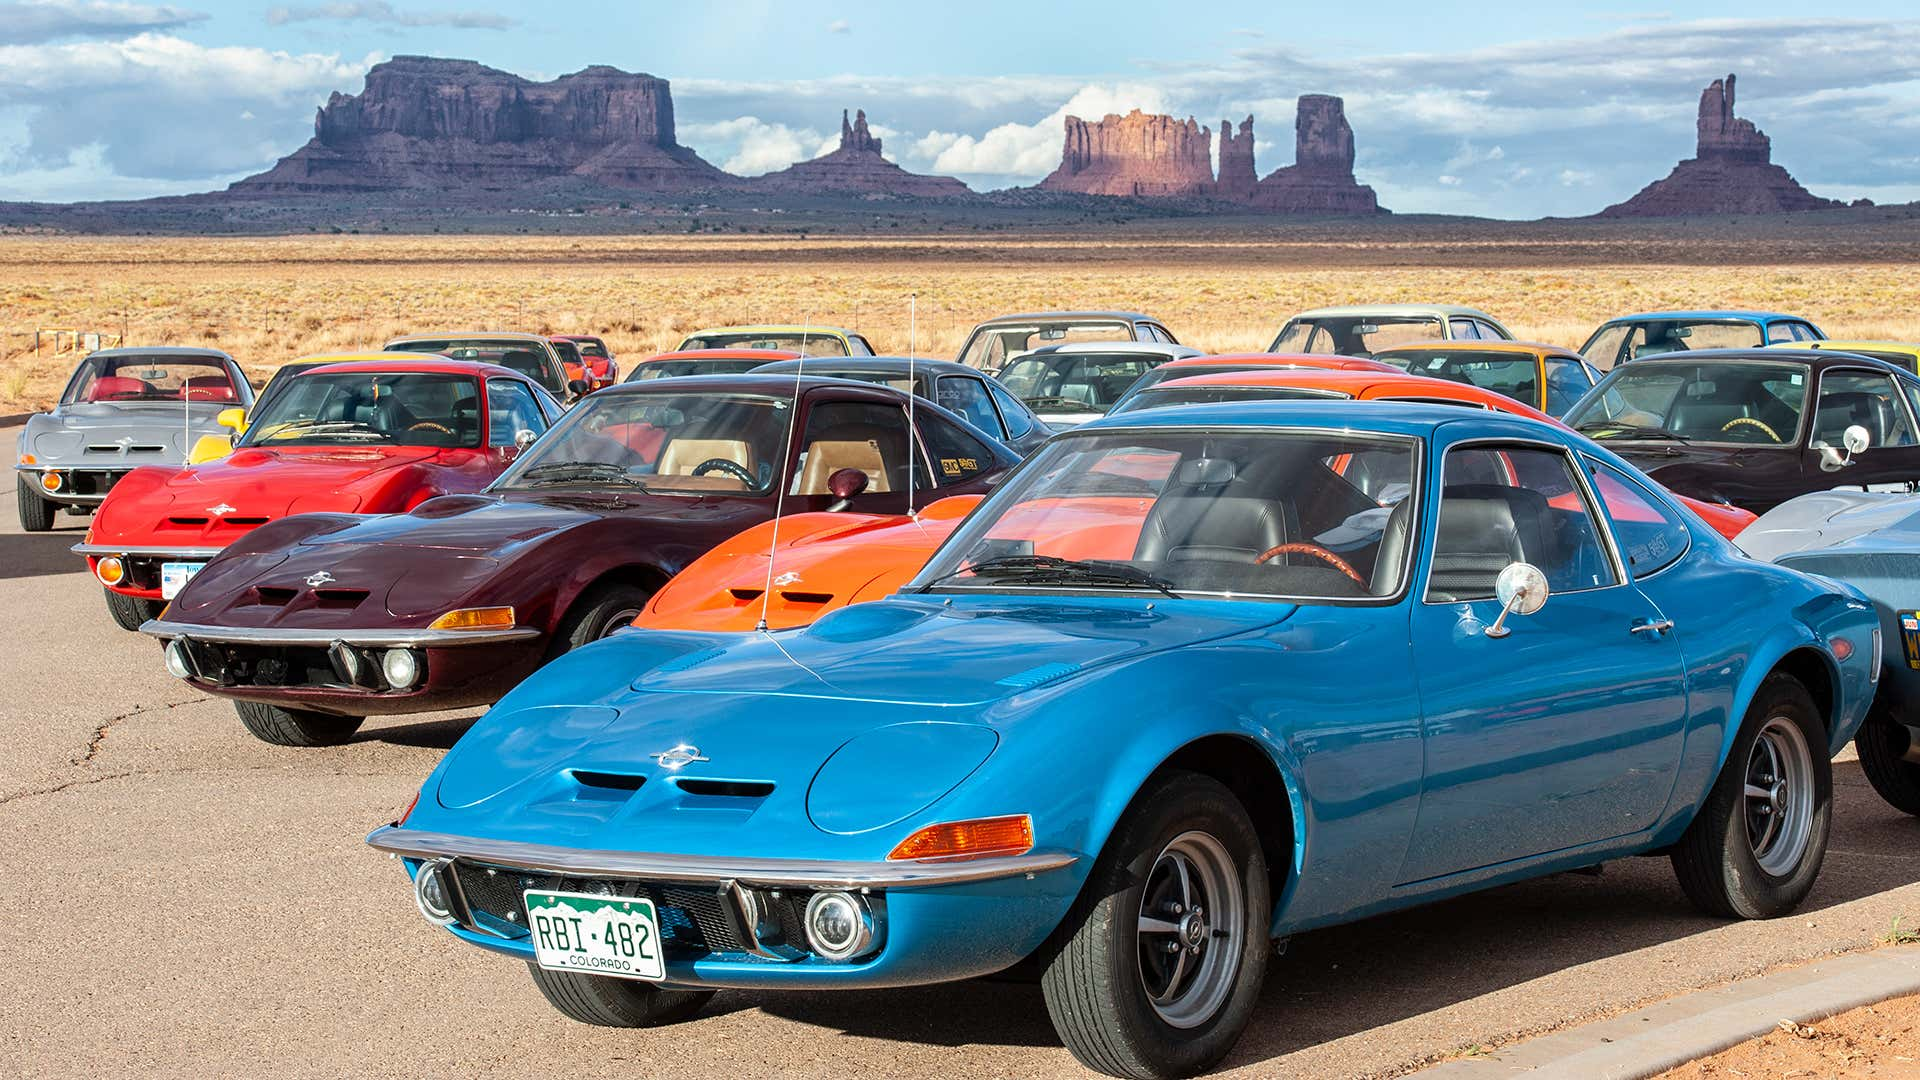 A gathering of colorful Opel GTs in the desert.